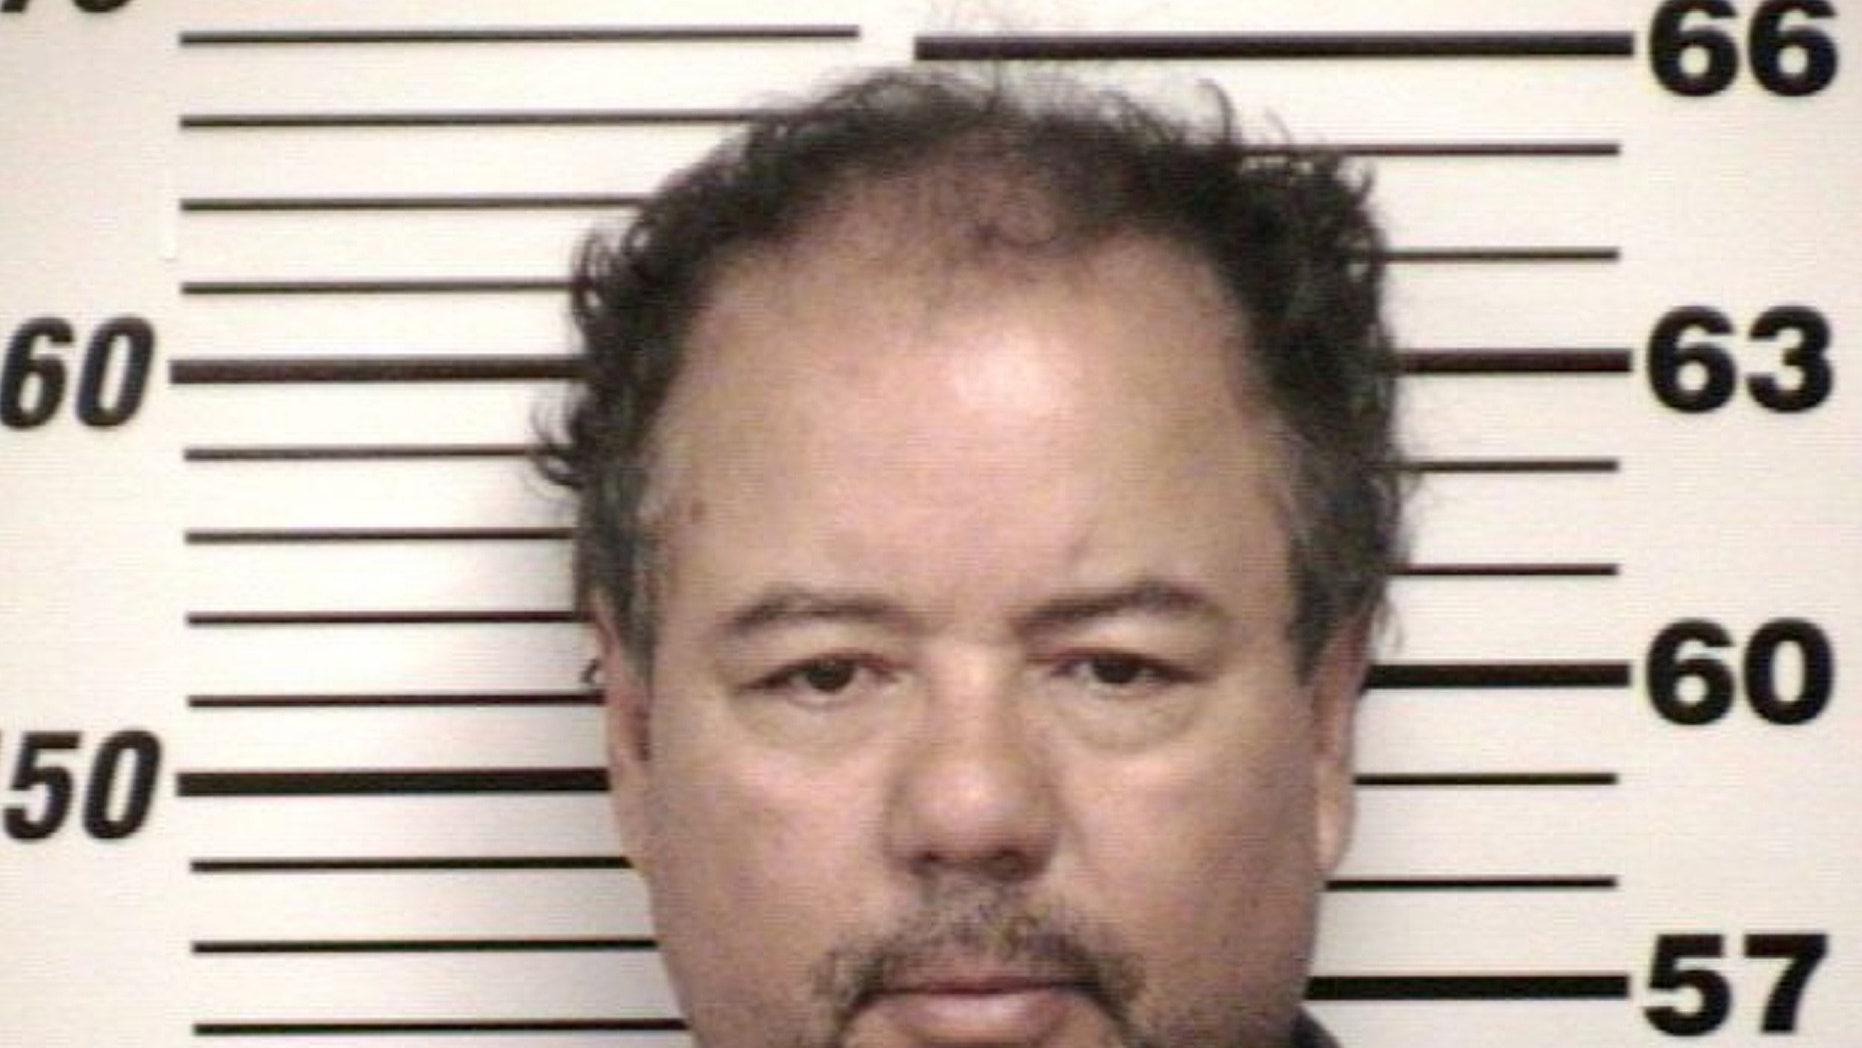 FILE - This undated file photo provided by Cuyahoga County Jail shows Ariel Castro. Cleveland officials are trying to keep Castro's house, where three women were imprisoned for a decade, intact until his trial is concluded. (AP Photo/Cuyahoga County Jail, File)